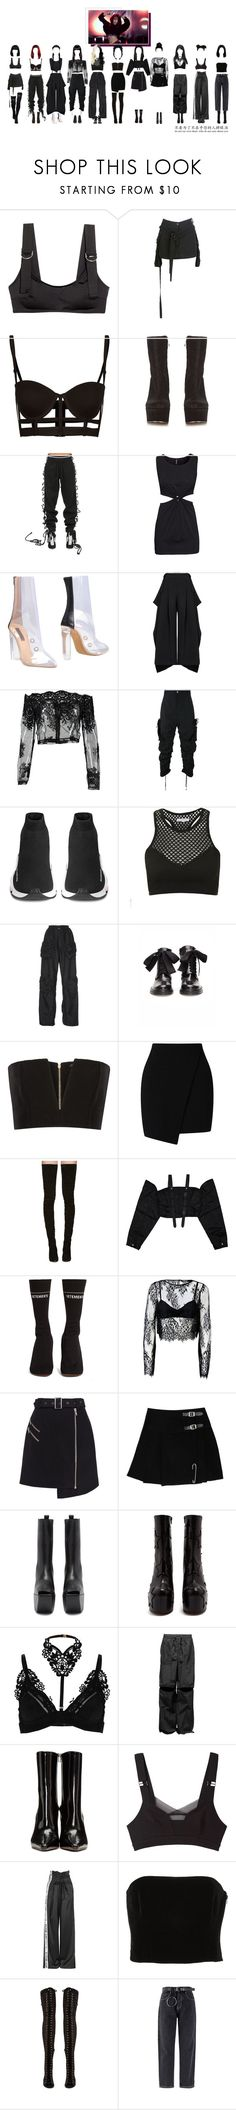 """11:11 - PREDEBUT DANCE PRACTICE"" by careful-what-you-wish-for ❤ liked on Polyvore featuring Maison Margiela, Puma, H&M, Yeezy by Kanye West, Maticevski, FourTwoFour on Fairfax, Balenciaga, Topshop, J.W. Anderson and A.F. Vandevorst"